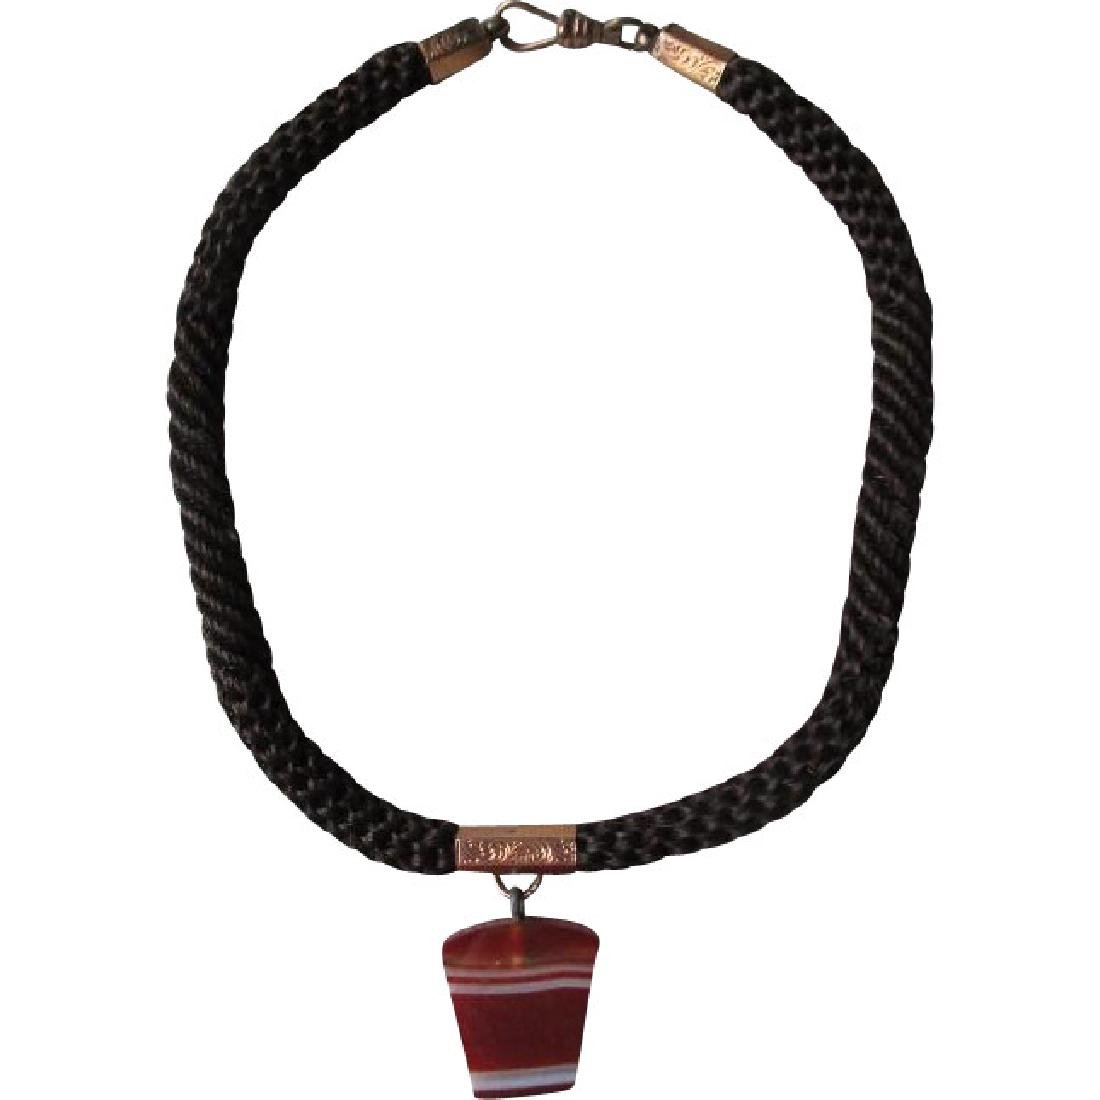 Victorian Woven Hair Mourning Choker Necklace with